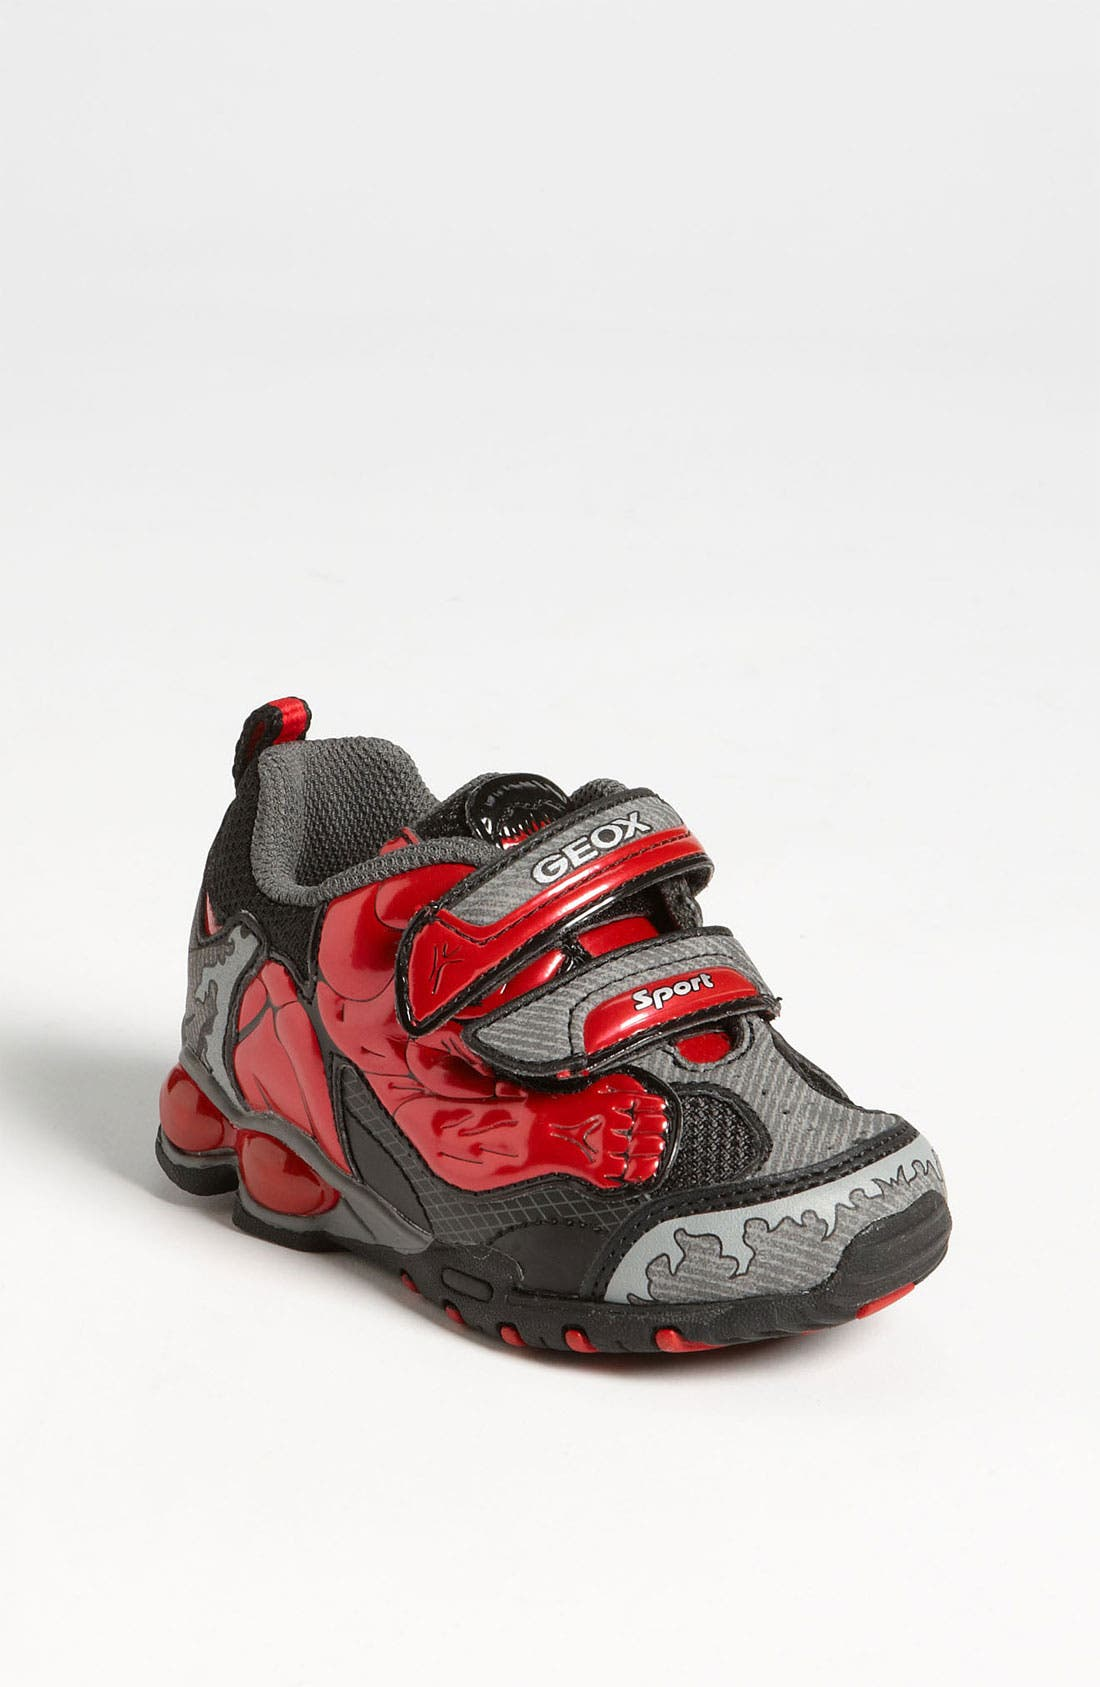 Alternate Image 1 Selected - Geox 'Fighter' Light-Up Sneaker (Walker & Toddler)